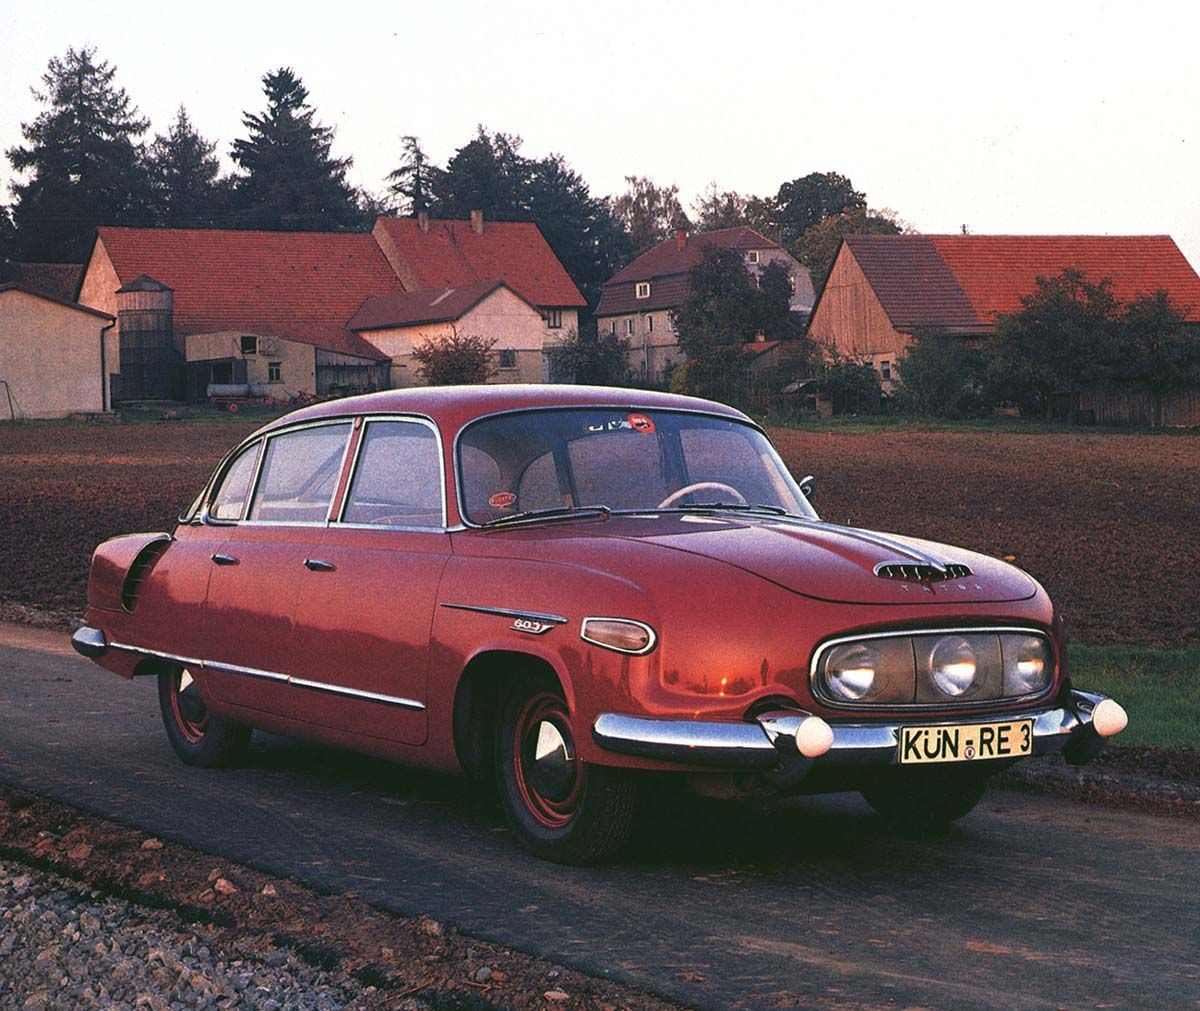 This 1958 Czechoslovakian model was not a very common car in the Eastern block, nor it was a Communist answer to any best-selling Western vehicle. The Tatra 603 was such a rarity on the streets, that ordinary people were considered lucky to even see one.